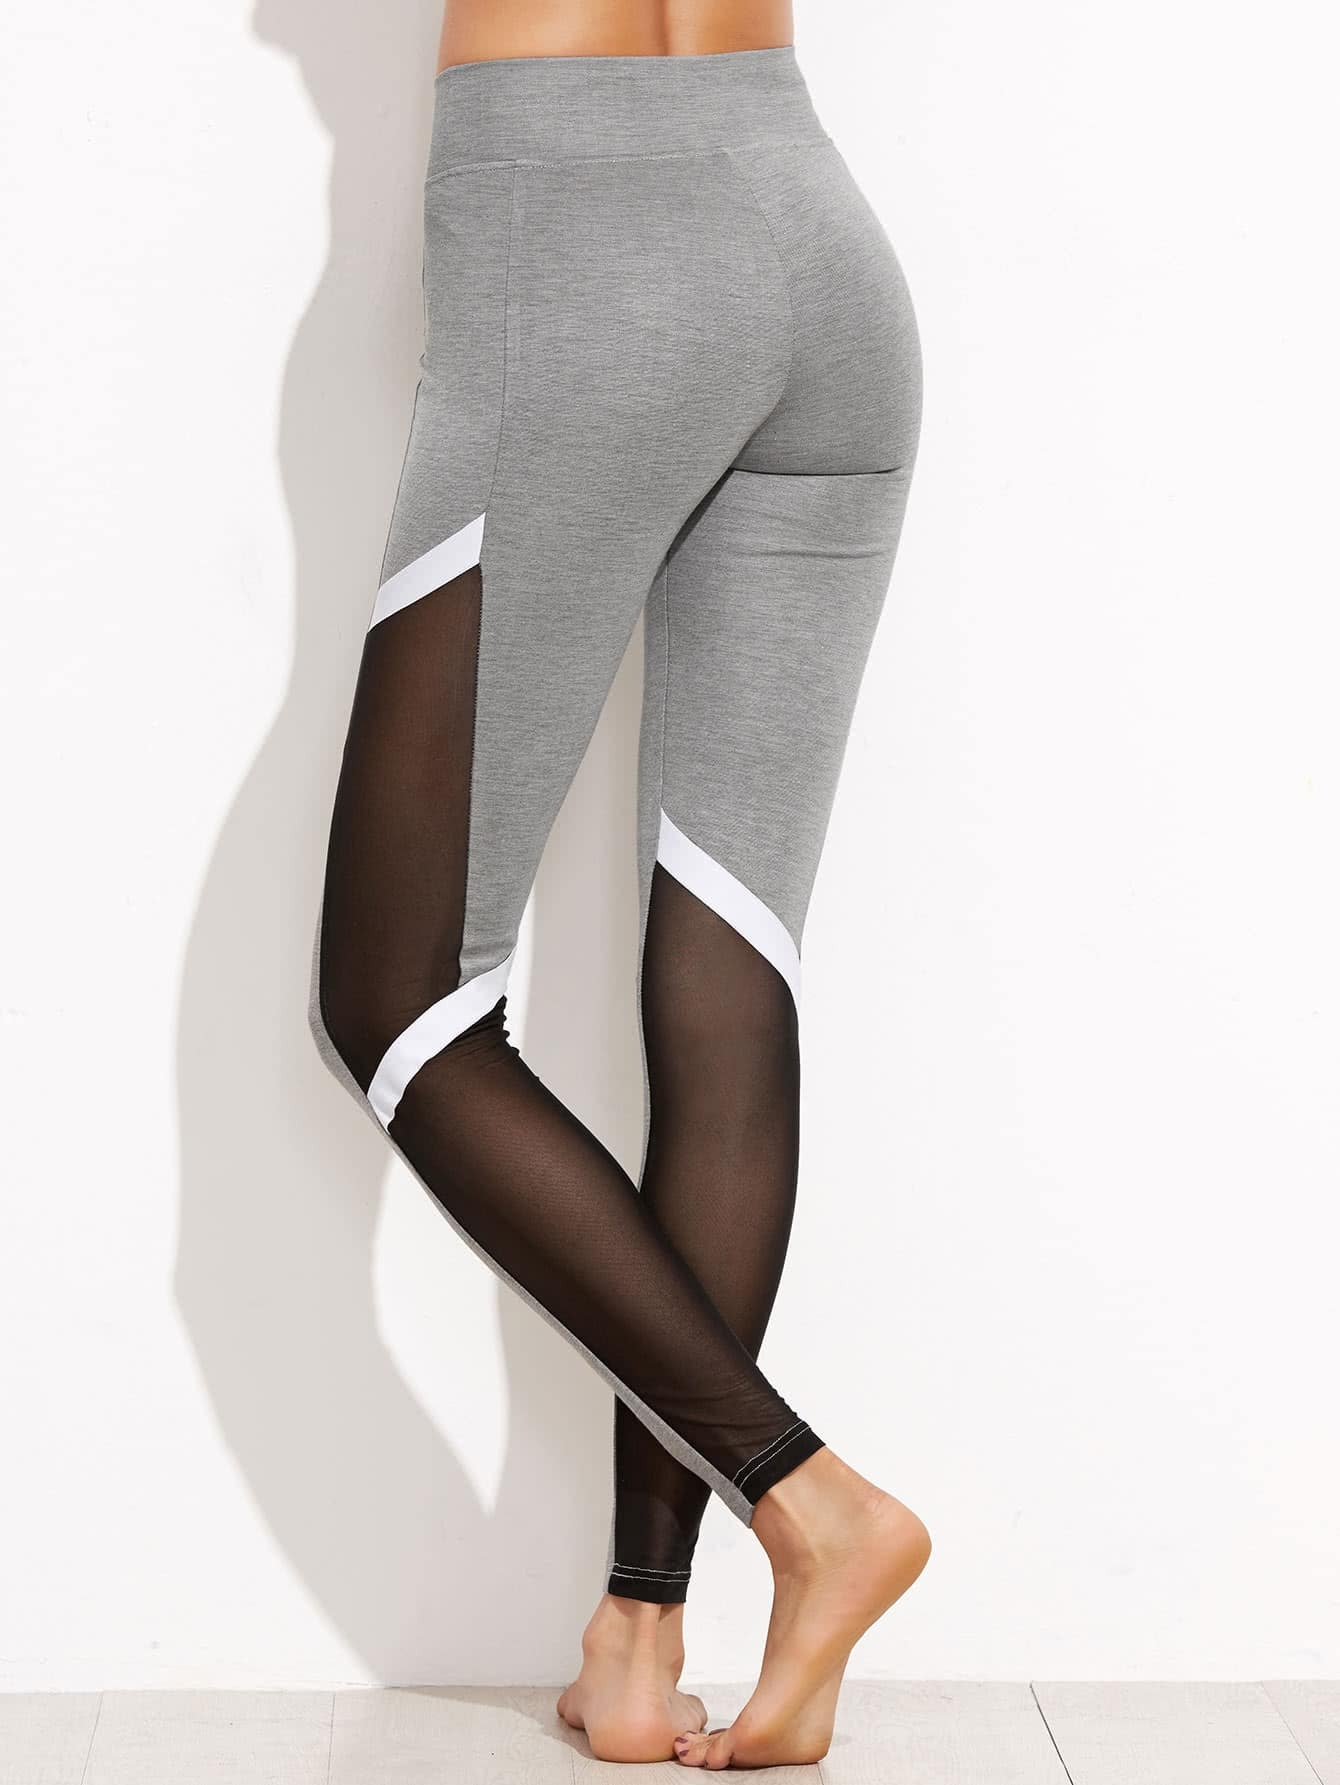 leggings161011701_2